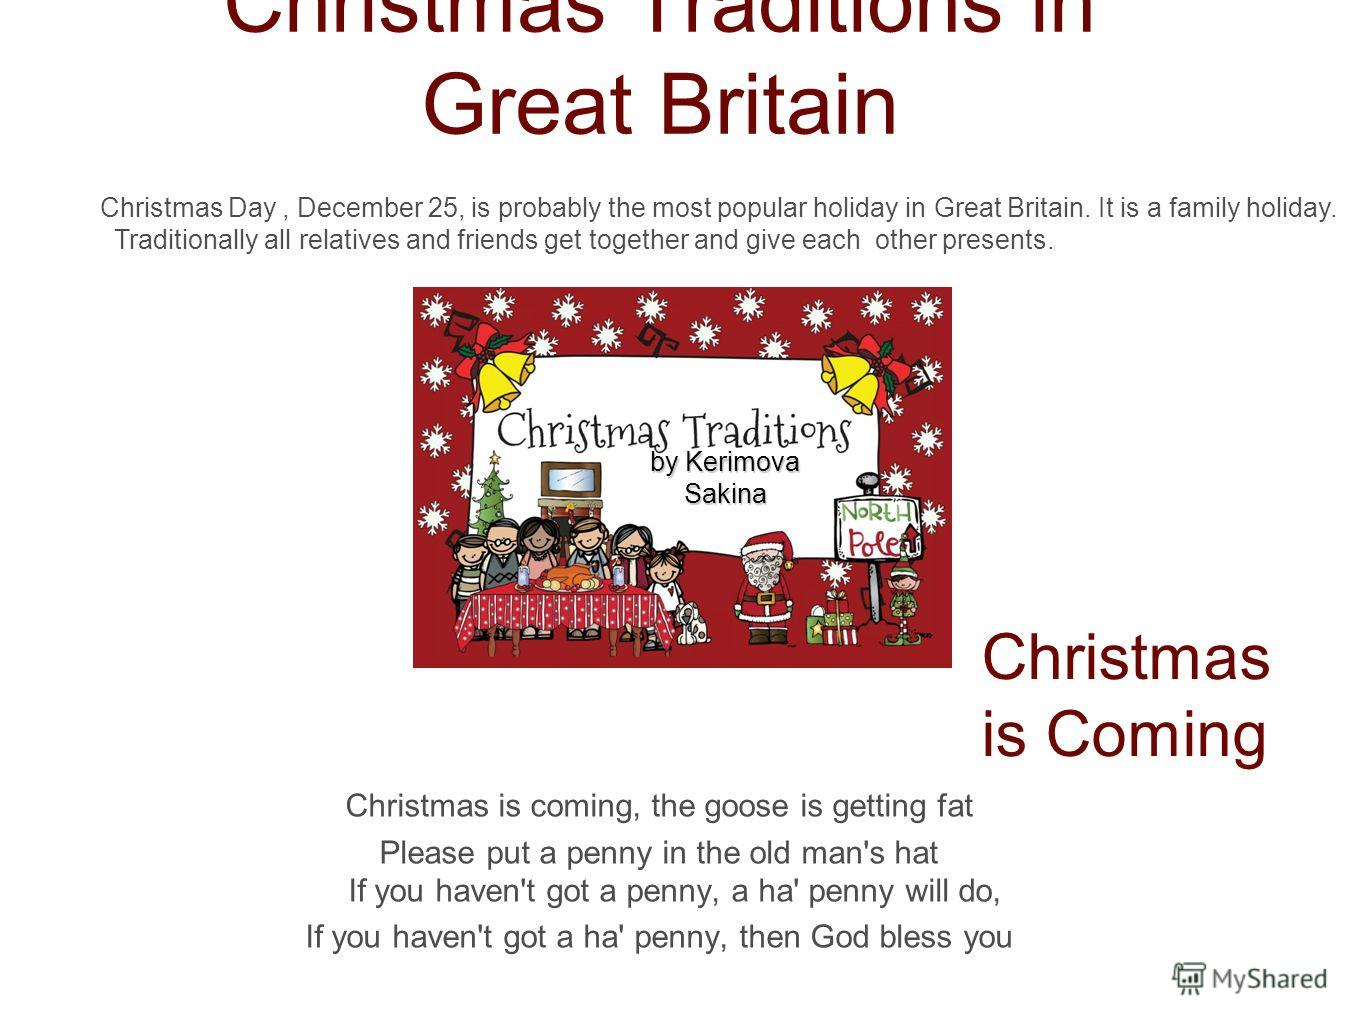 Christmas Traditions in Great Britain Christmas is coming, the goose is getting fat Please put a penny in the old man's hat If you haven't got a penny, a ha' penny will do, If you haven't got a ha' penny, then God bless you Christmas is Coming Christ